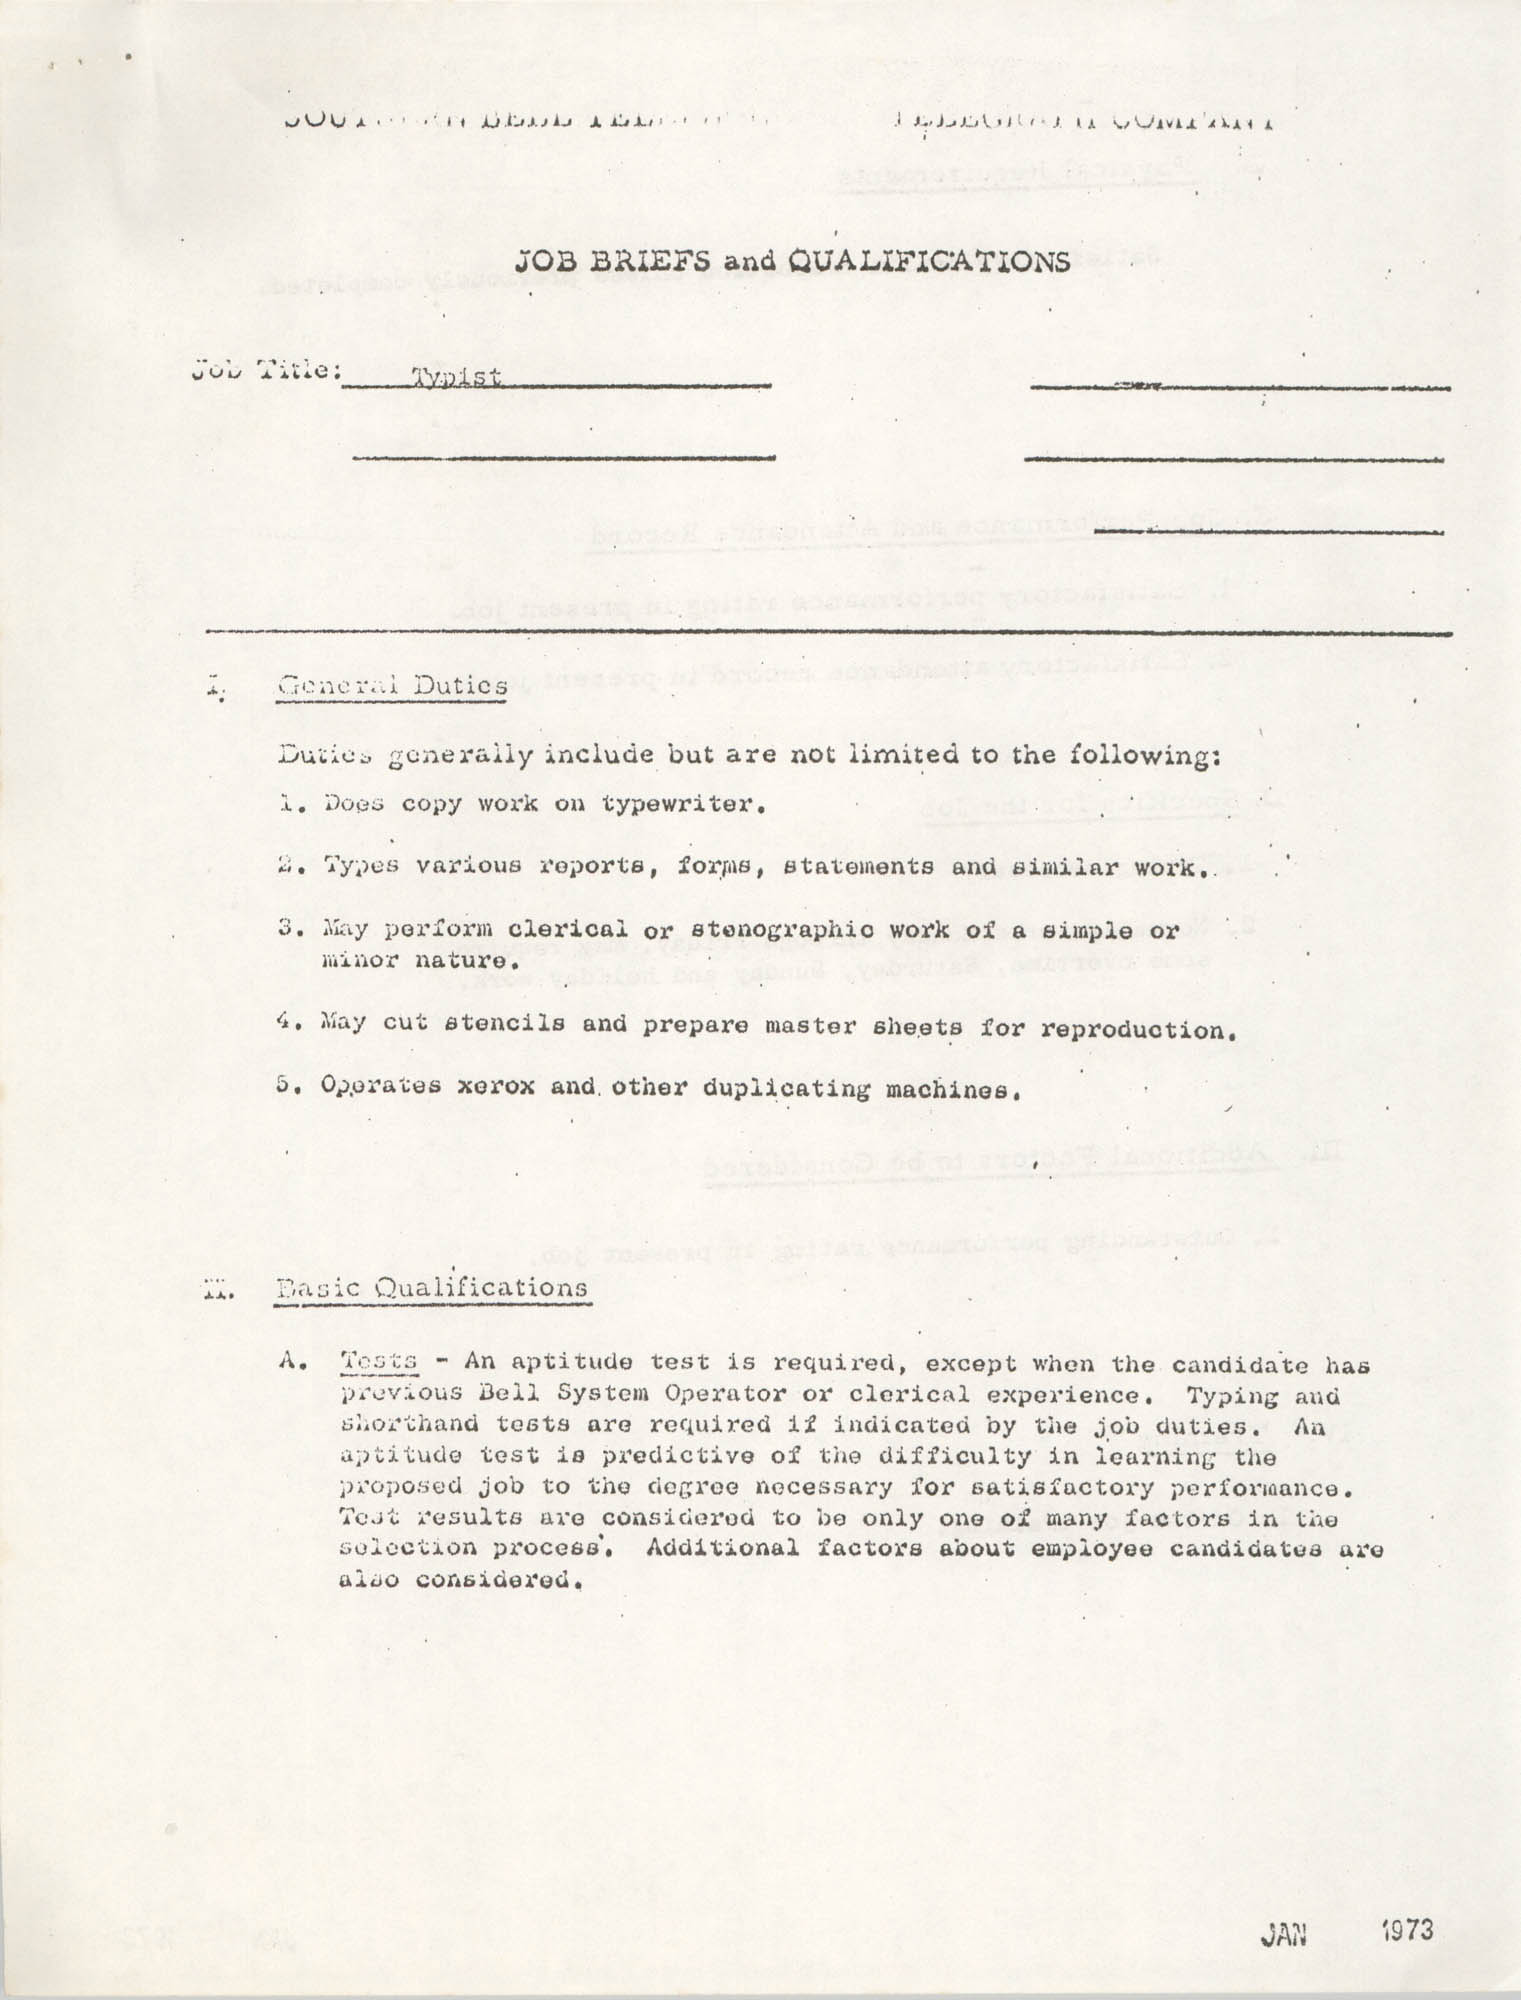 Southern Bell Telephone and Telegraph Company Job Briefs and Qualifications, Typist, Page 1